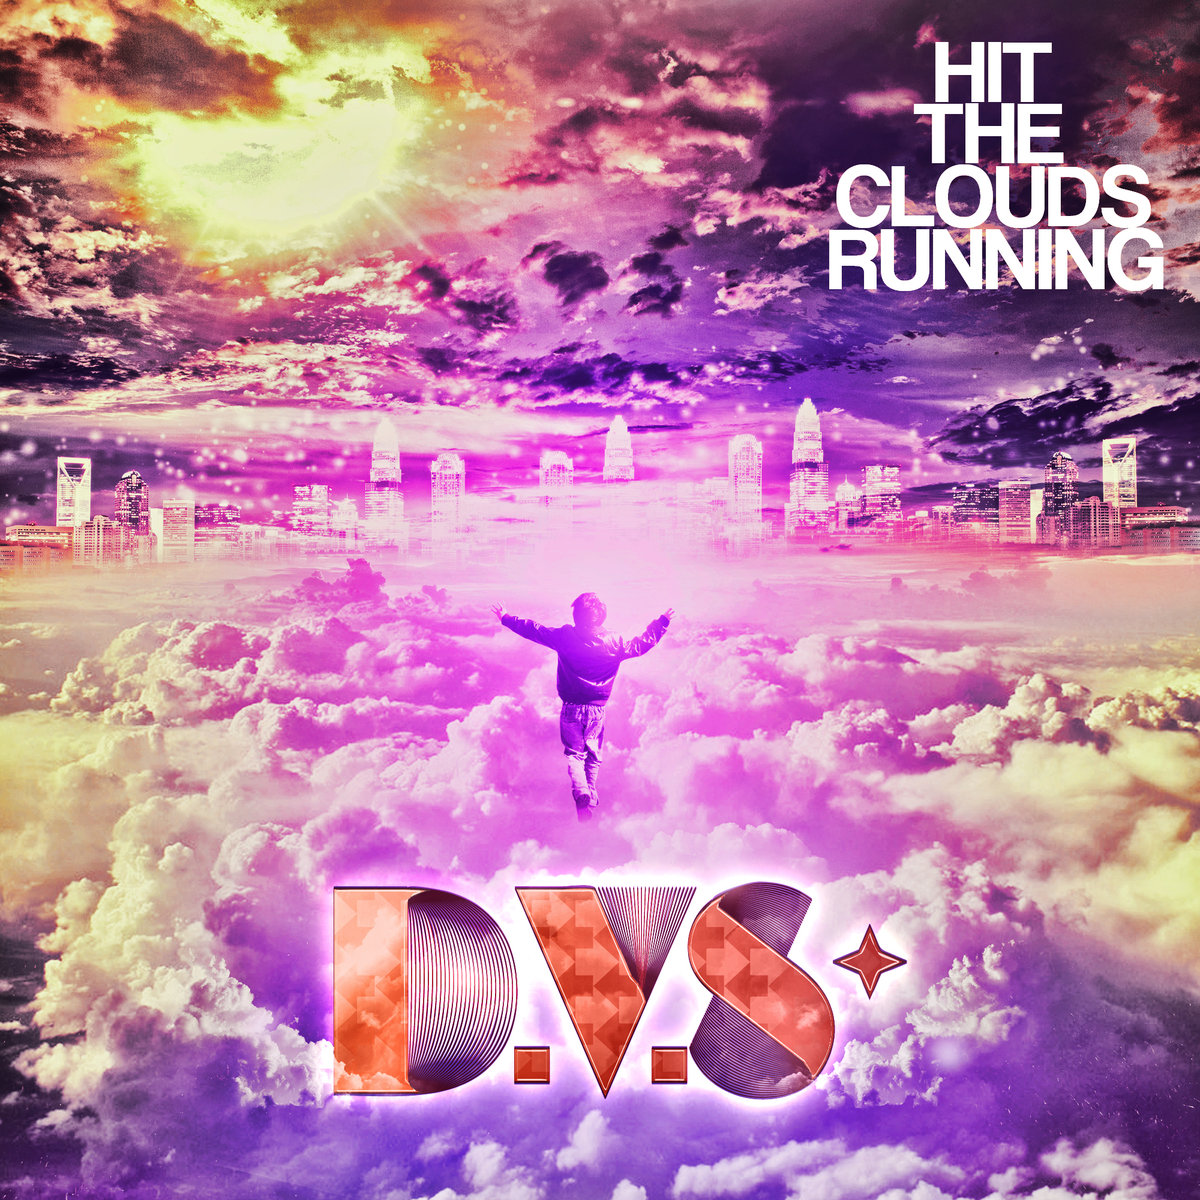 D.V.S* feat. Psymbionic - Vault of Stars @ 'Hit The Clouds Running' album (electronica, guitar)